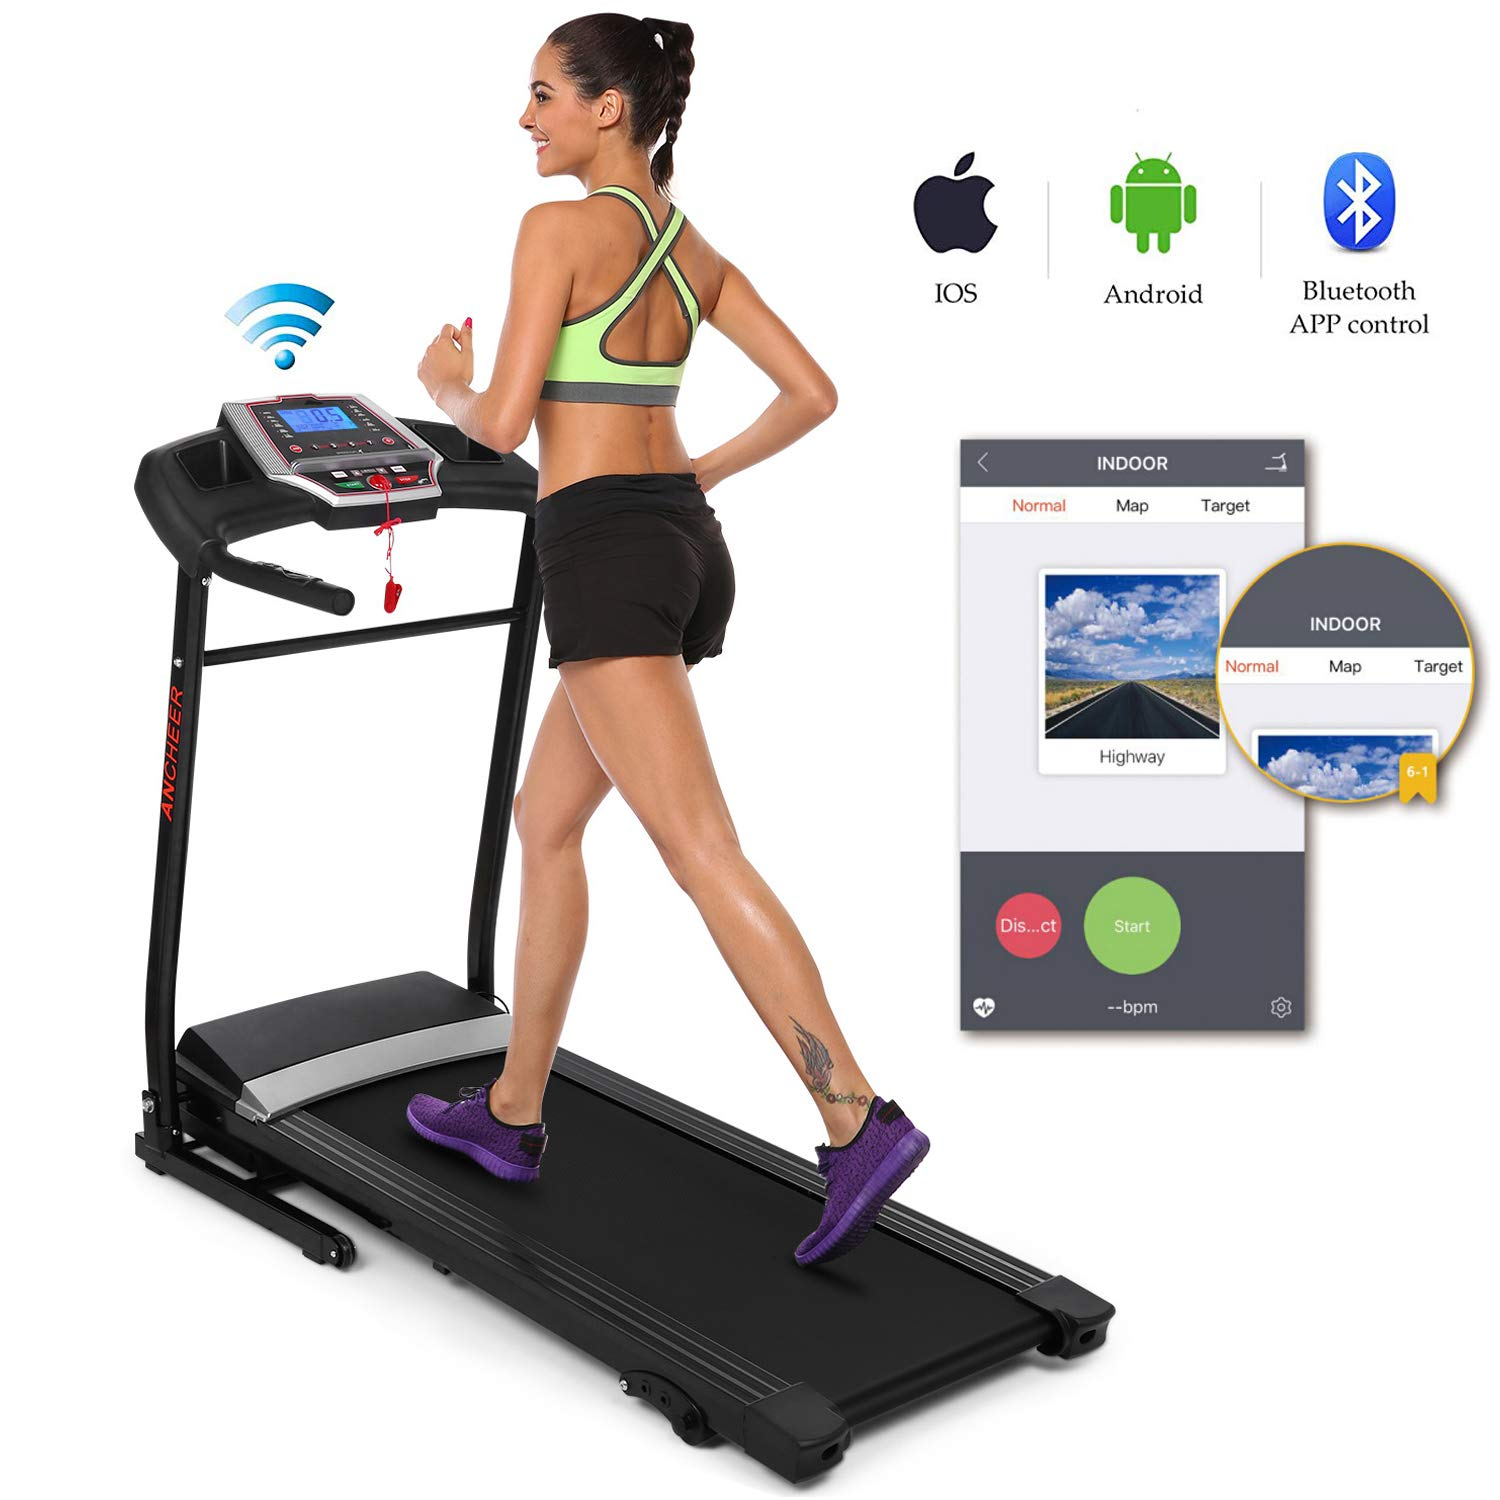 Folding Electric Treadmill Incline with Smartphone APP Control, Power Motorized Fitness Running Machine Walking Treadmill(US Stock) (2.25 HP)